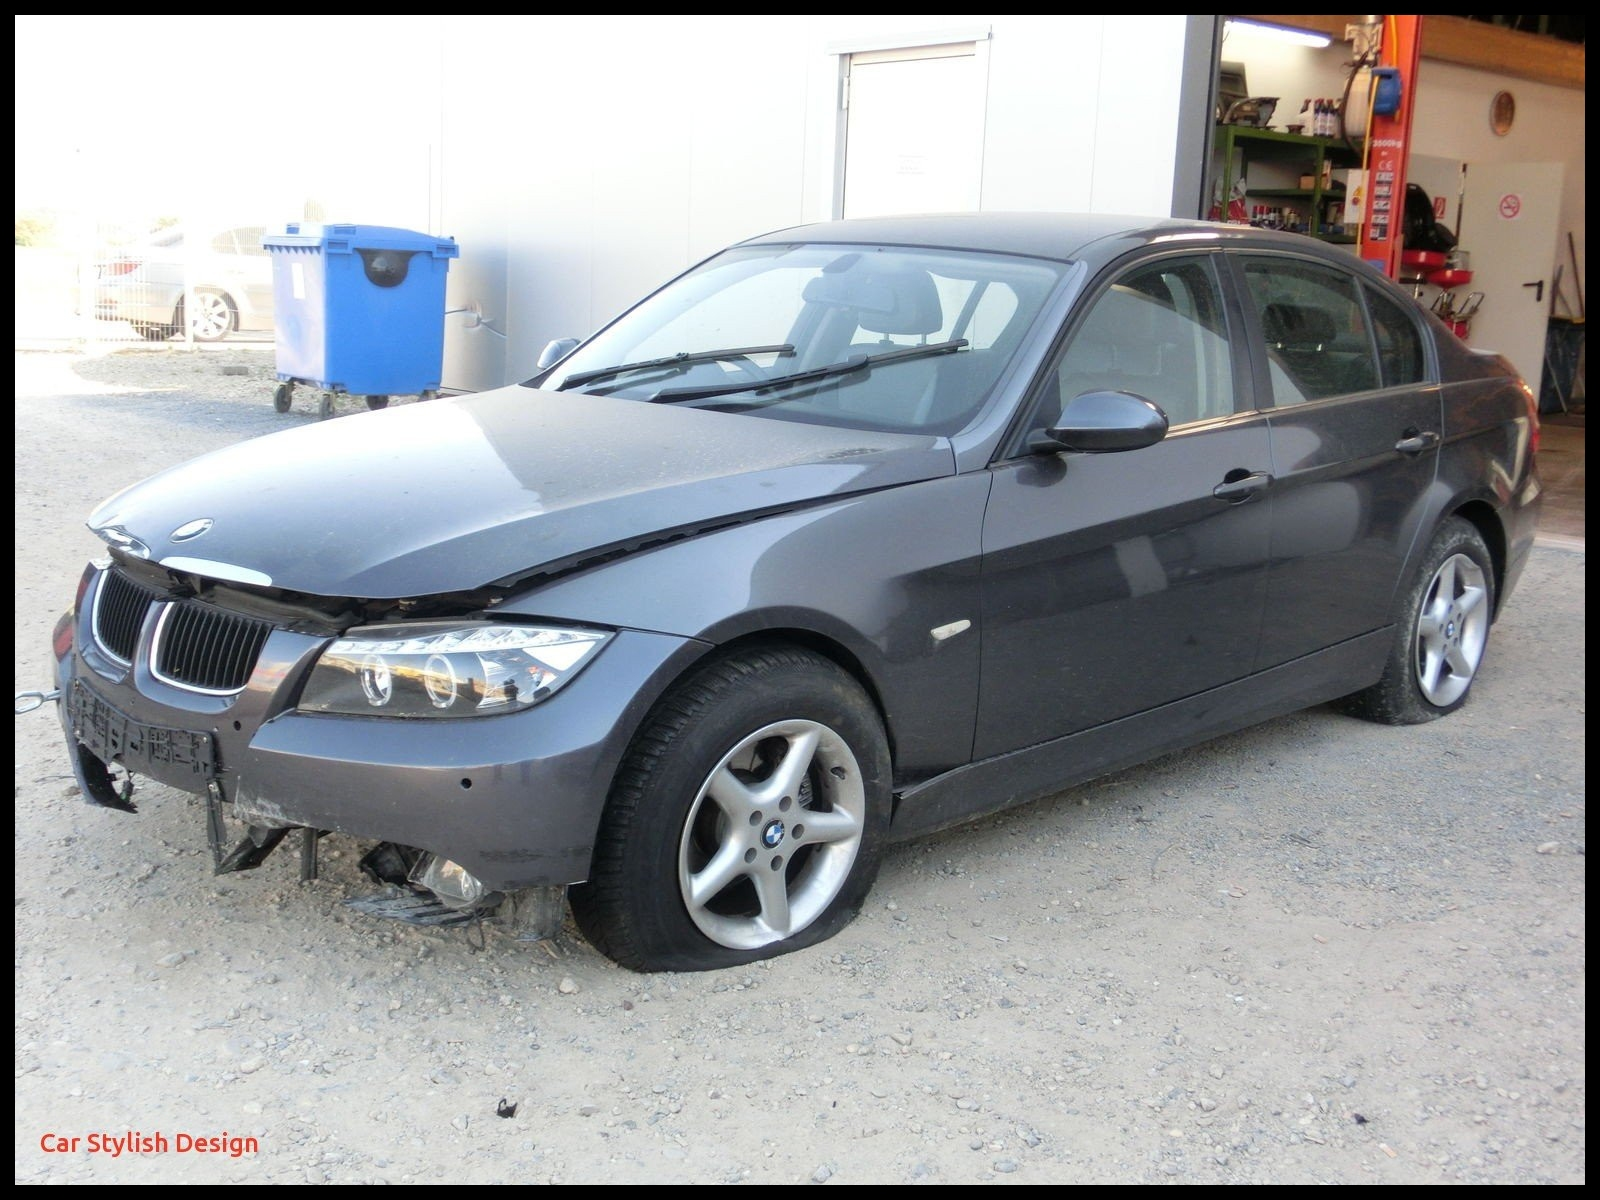 Bmw 335ci for Sale Best 2008 Bmw 335i Beautiful Used Bmw Instrument Clusters for Sale